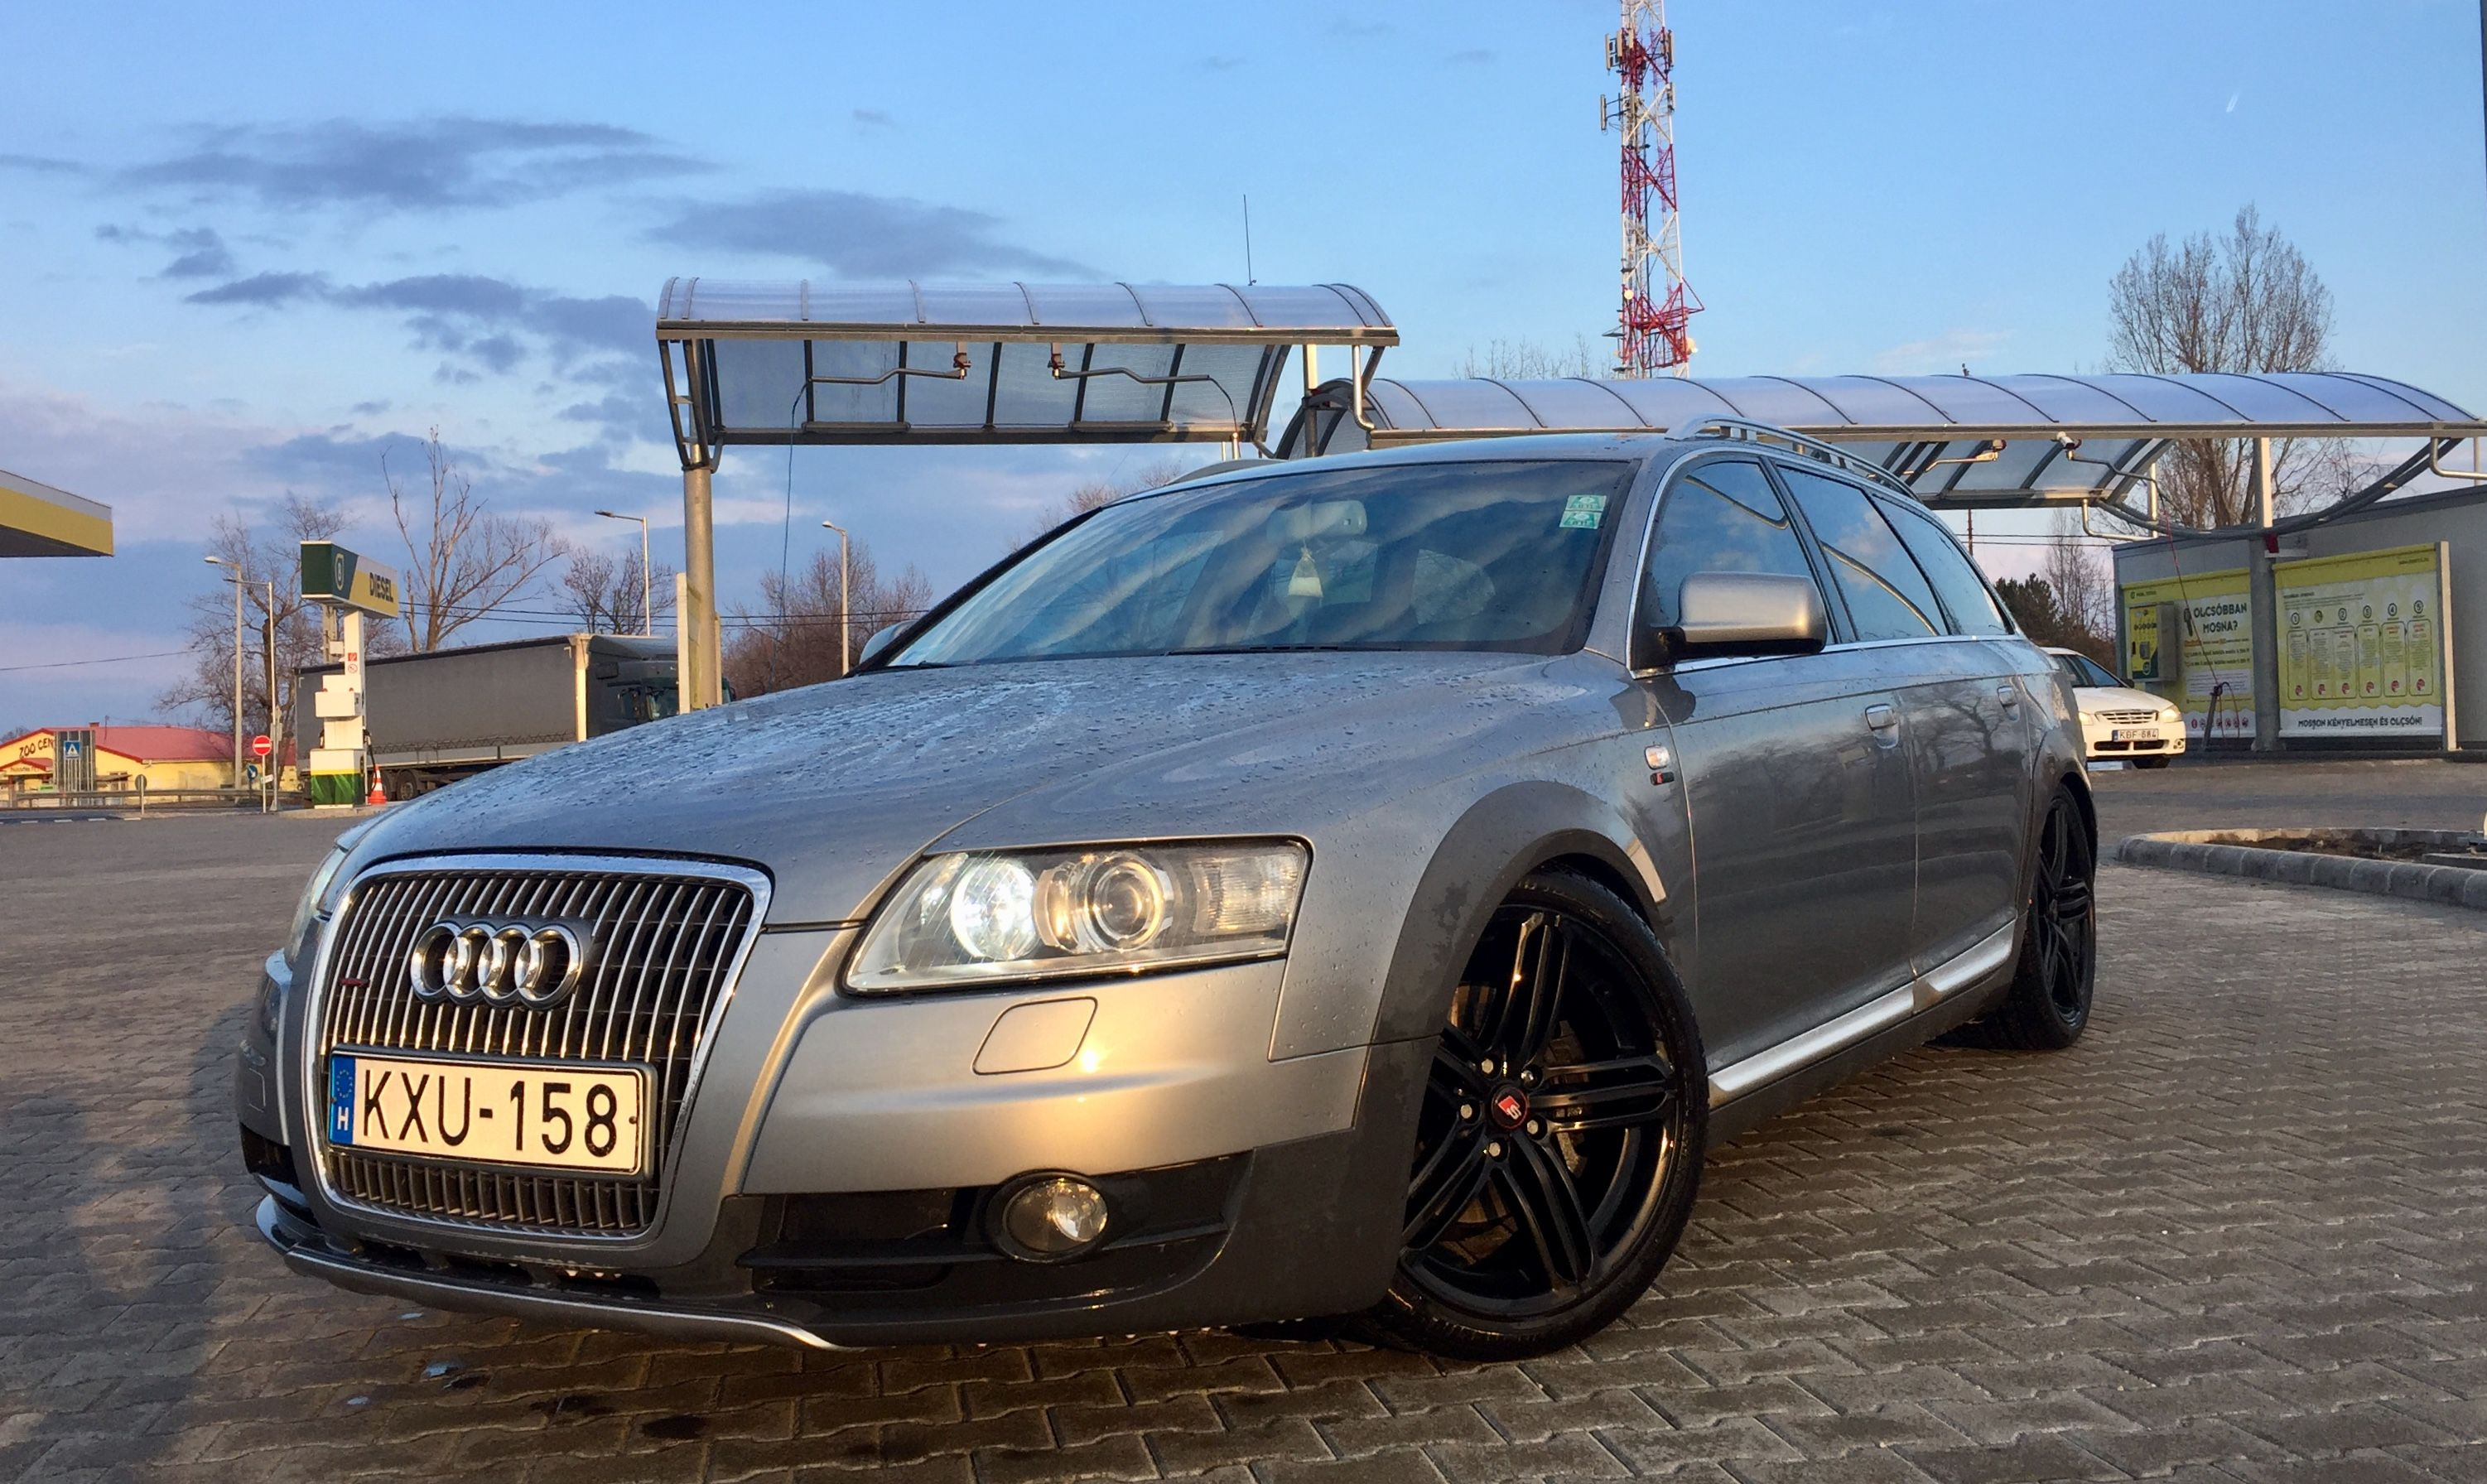 total so that guidance some t a tt allroad brings another head i motor forum had think pictures the for gasket shell grm seal to grassroots motorsports challenge and spent here kit audi are